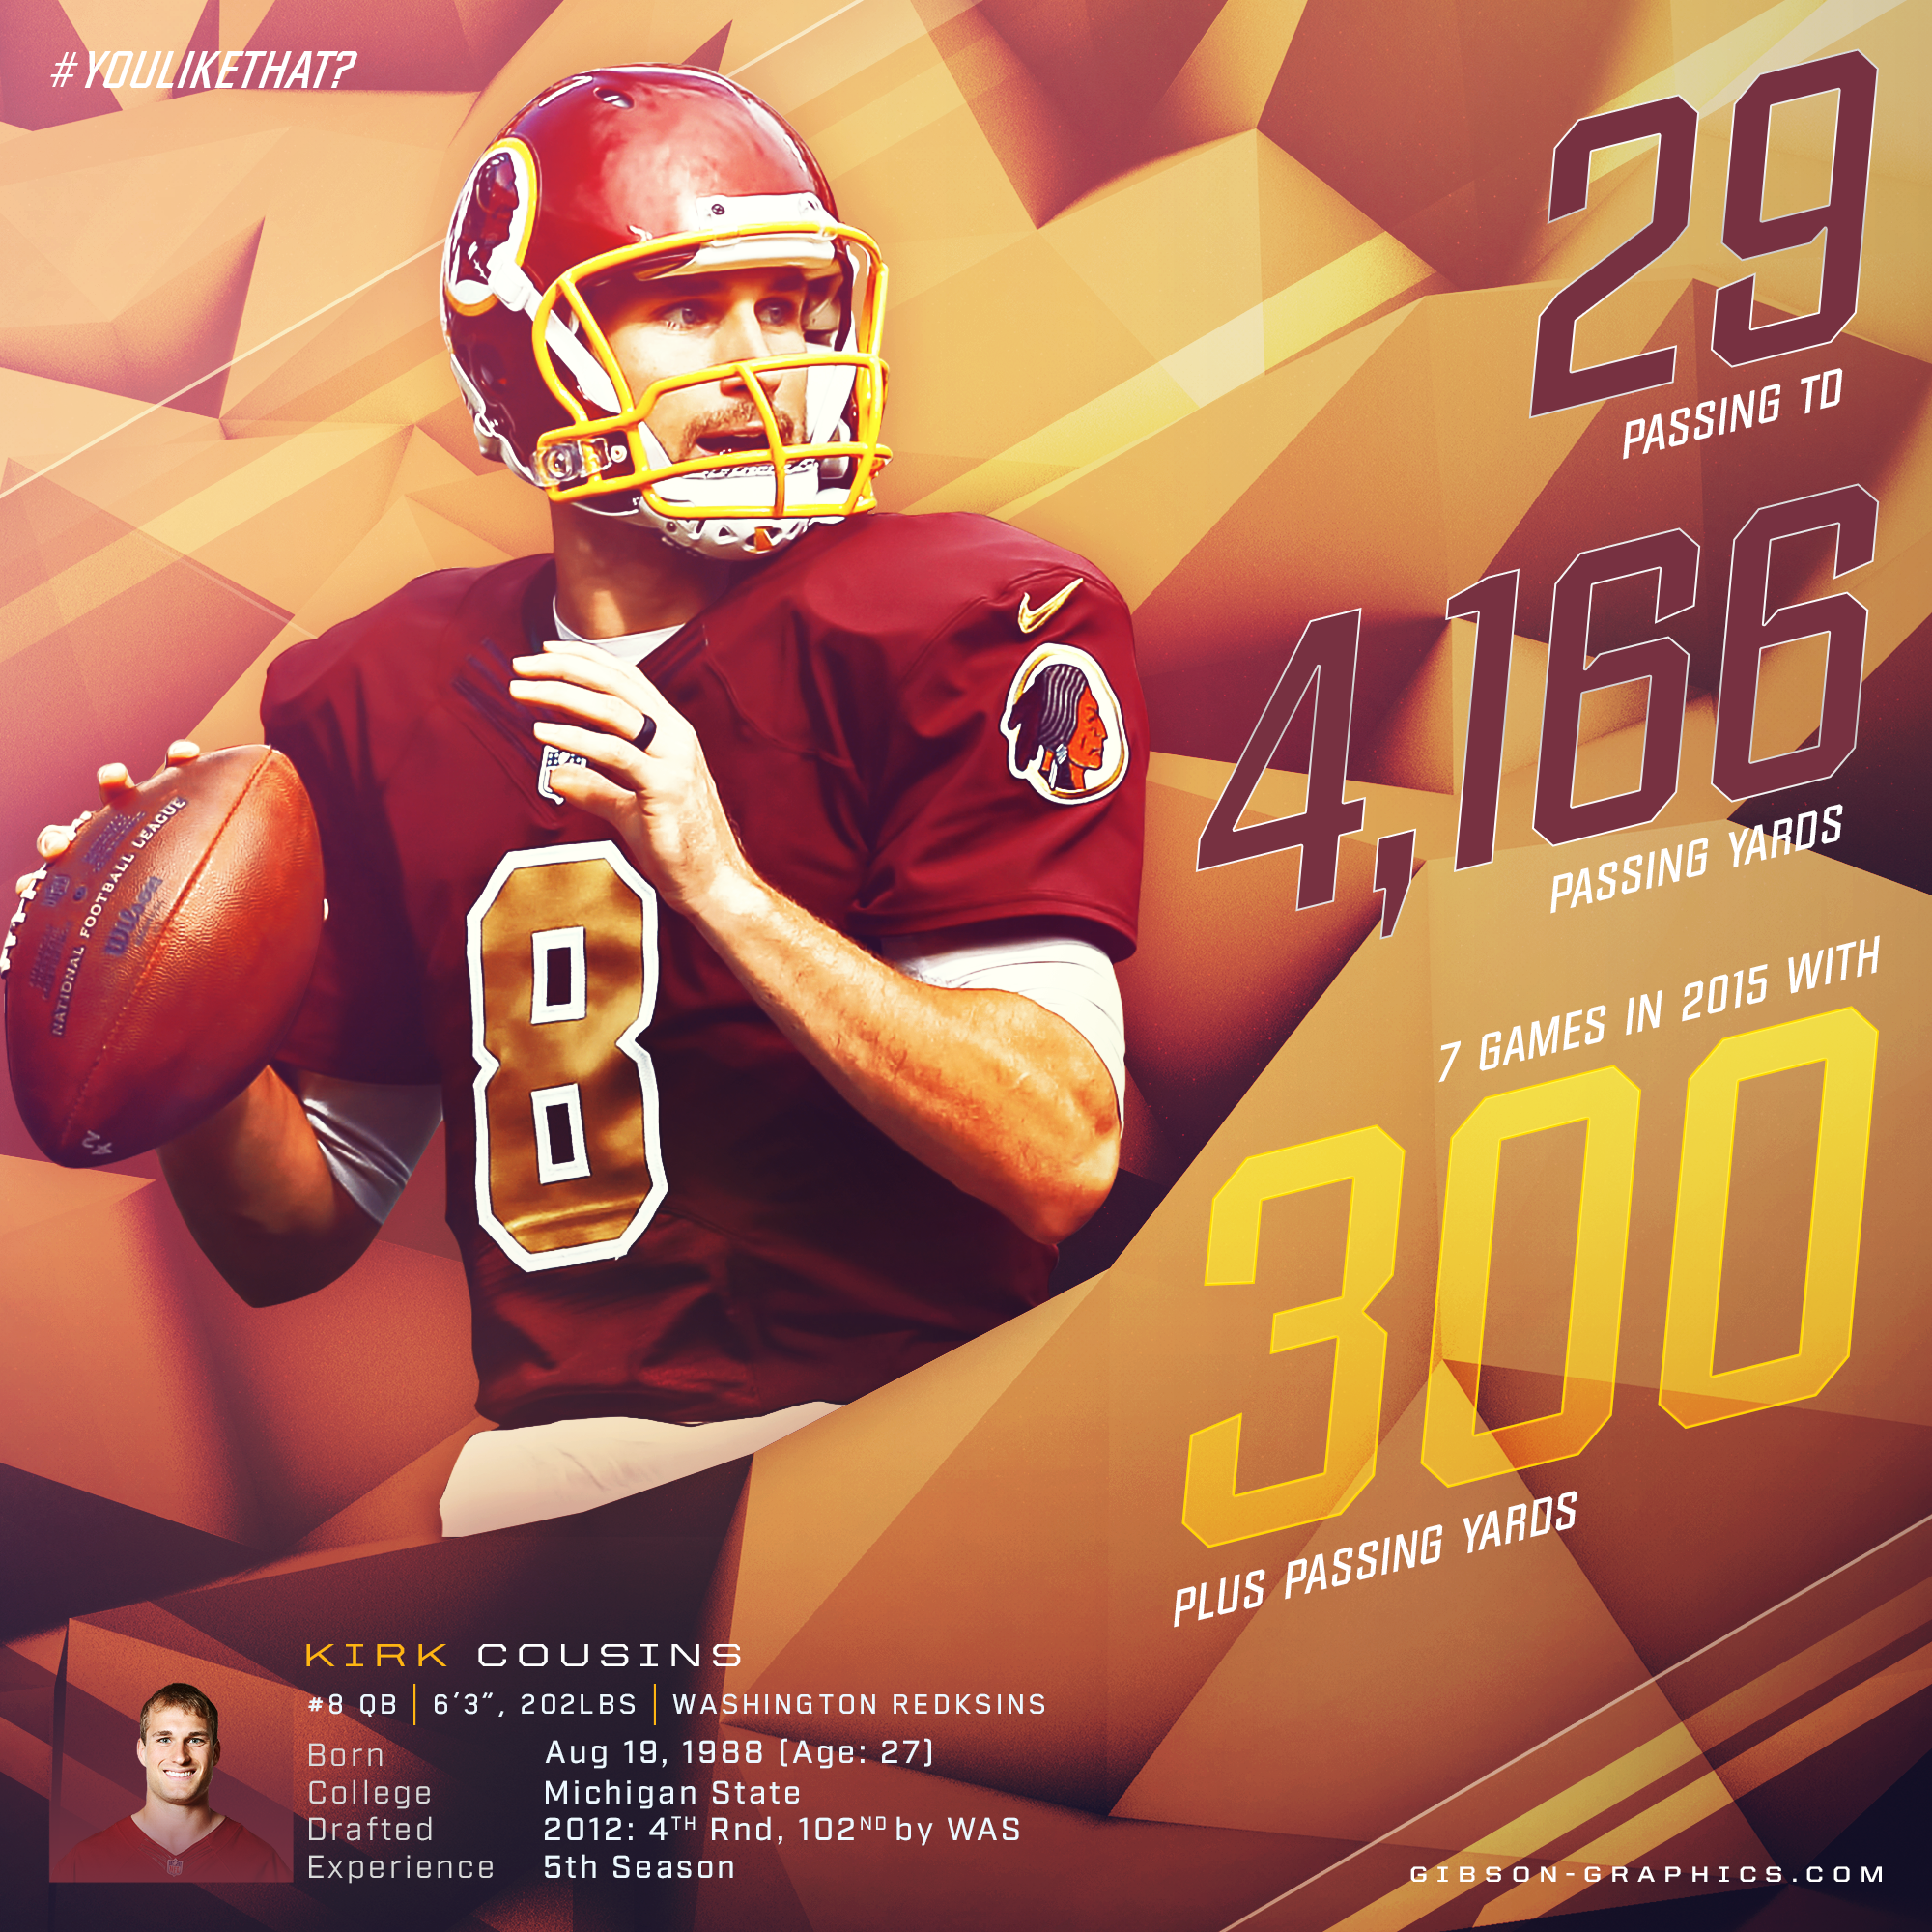 Kirk Cousins Infographic